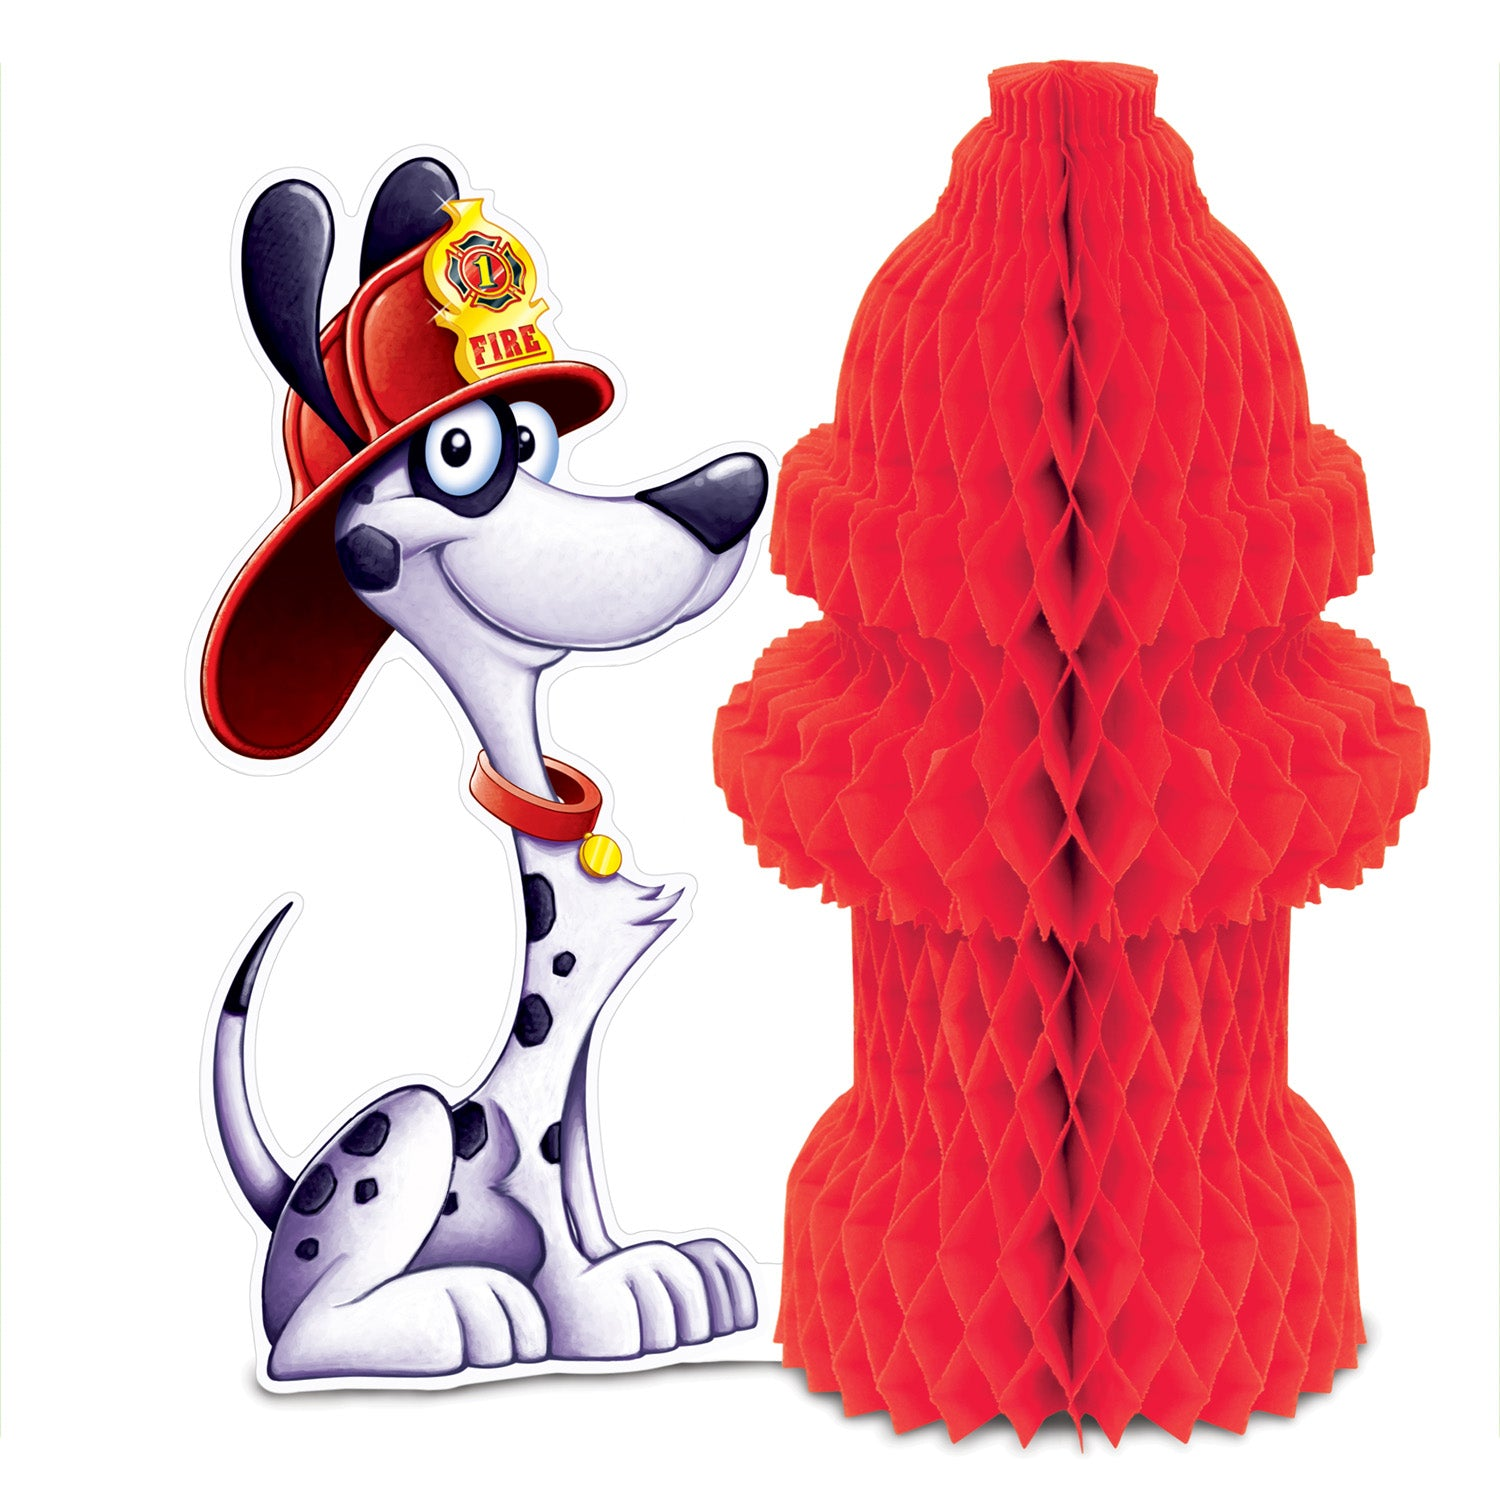 Fire Hydrant Centerpiece by Beistle - Fire Prevention Theme Decorations